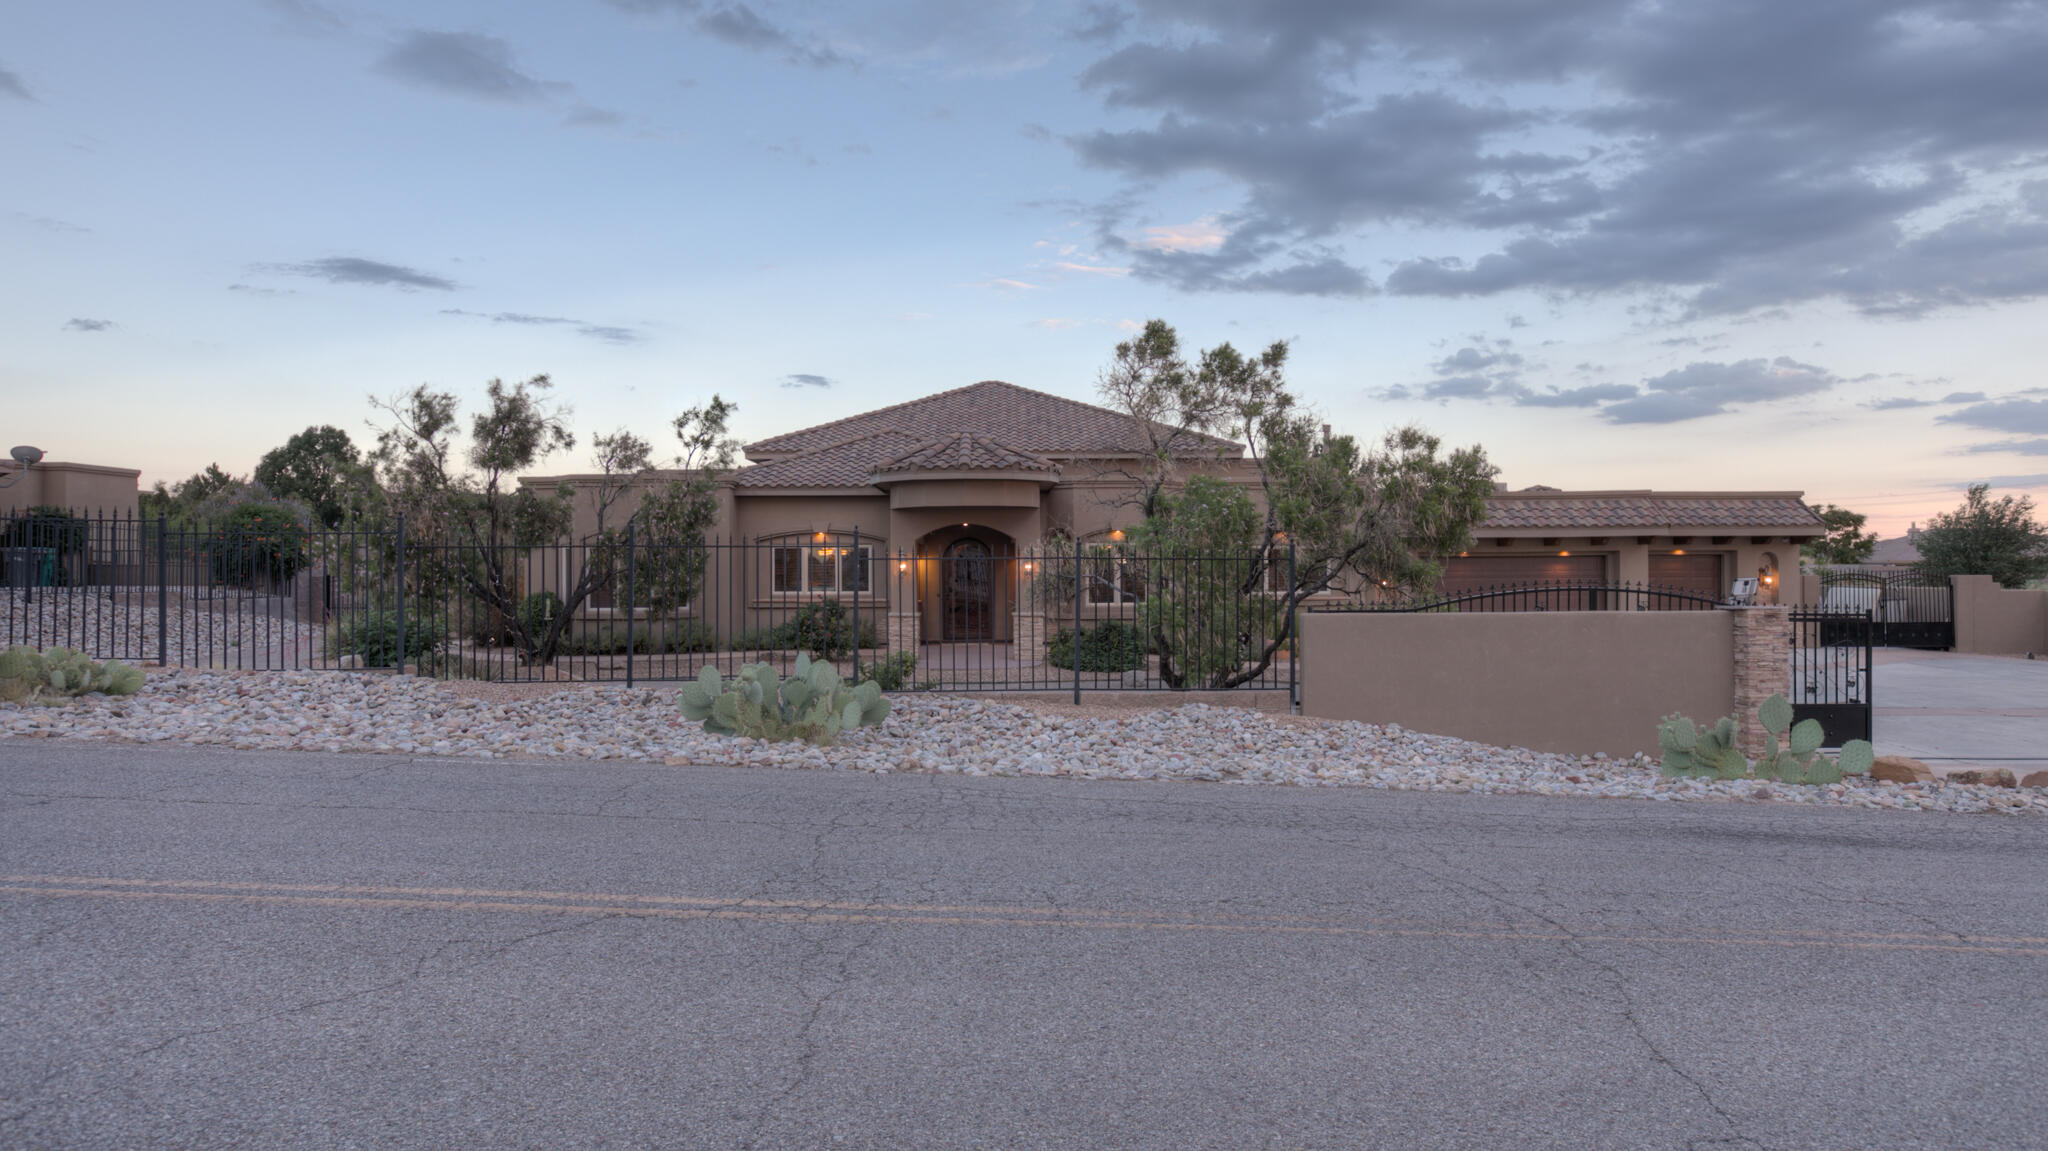 Welcome home to this exquisite estate in North Albuquerque Acres.  Nestled on a large lot with its own private guest house, this nearly 5,000 sq foot property has it all.  Wolf and sub zero appliances, stunning hand carved woodwork throughout, vaulted ceilings, beautiful beams, large open floor plan, two separate patios, storage galore, and custom lighting both inside and outside the house. Large bedrooms have walk in closets and attached en-suit private bathrooms. Primary bedroom is separate from the other rooms, has a door out to the back patio, two separate closets and sinks/vanities, huge shower with stained glass and custom tile work.  Enjoy a perfect backyard that is fully landscaped and complete with a hot tub, pool, huge patio, deck and kitchen perfect for entertaining, fruit trees